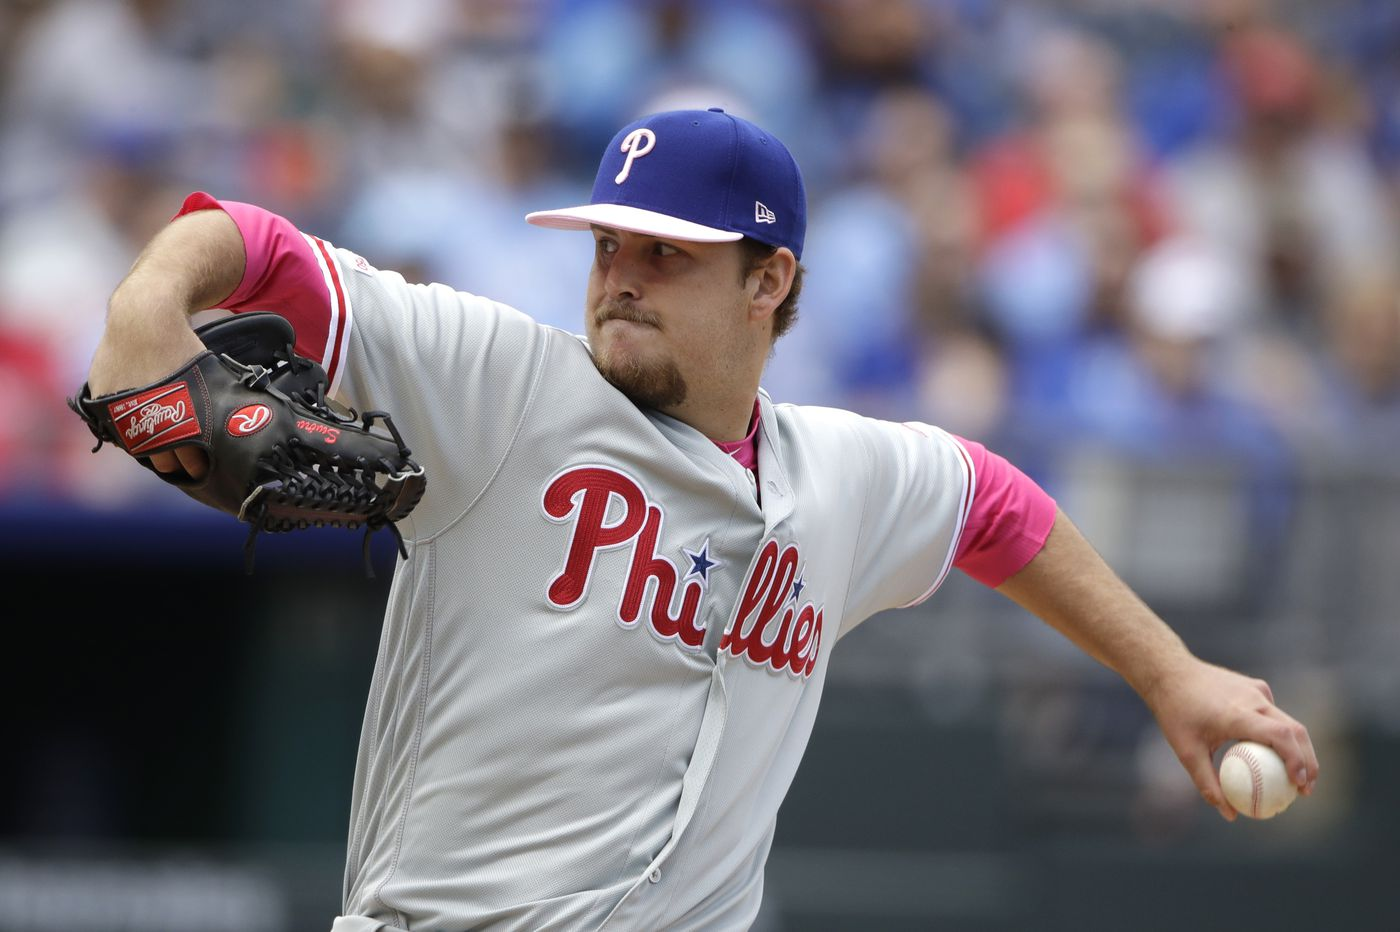 Cole Irvin's call-up to Phillies could send Nick Pivetta or Vince Velasquez to bullpen